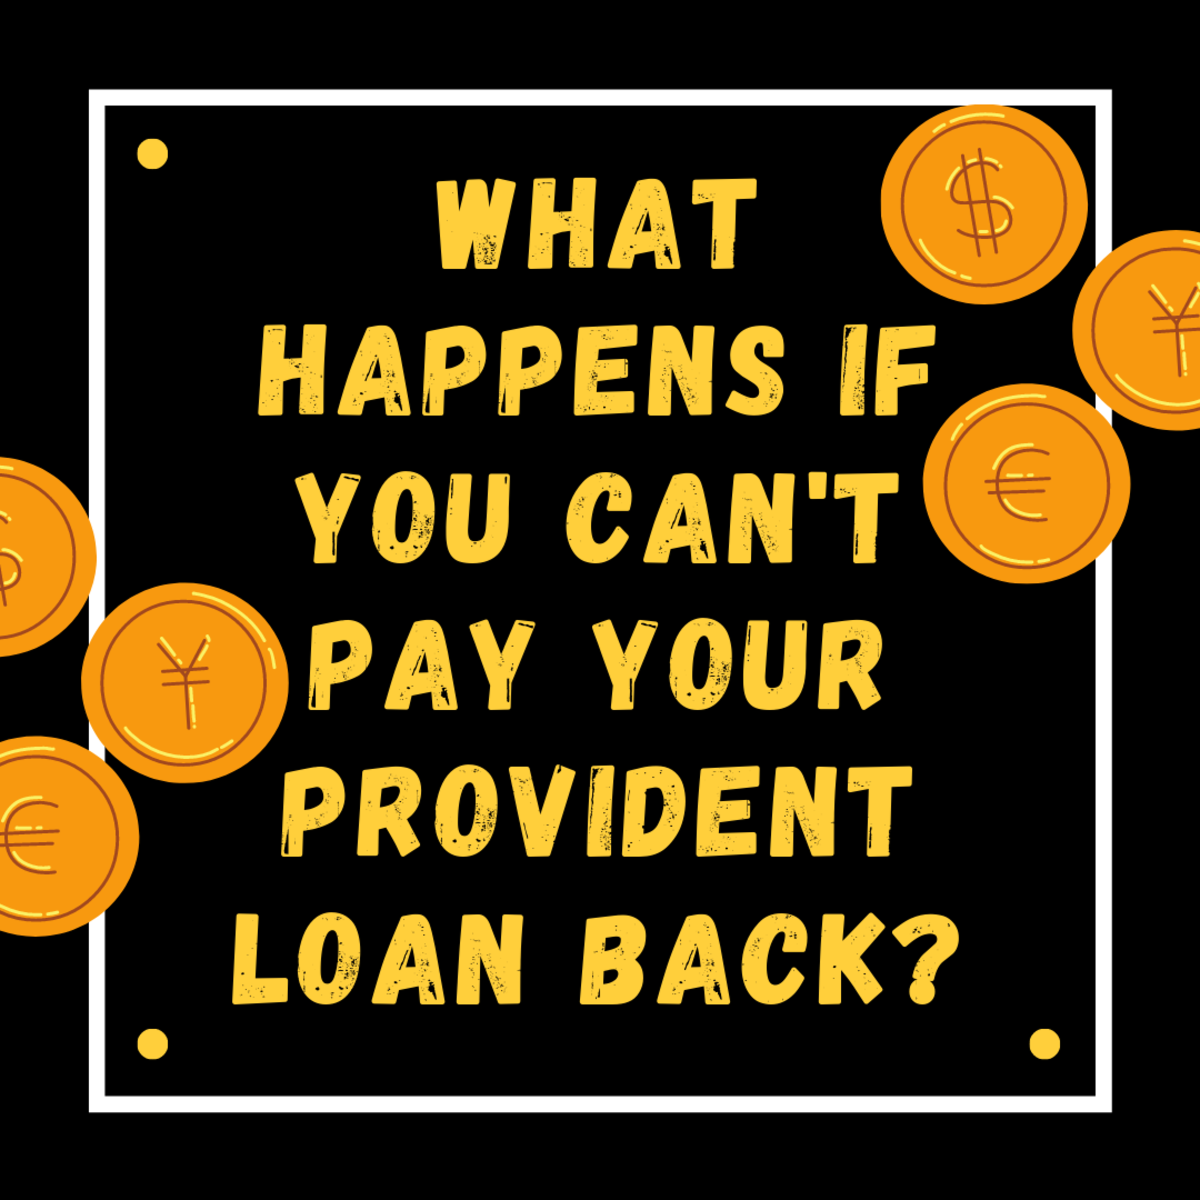 What Happens If You Can't Pay Your Provident Loan Back?